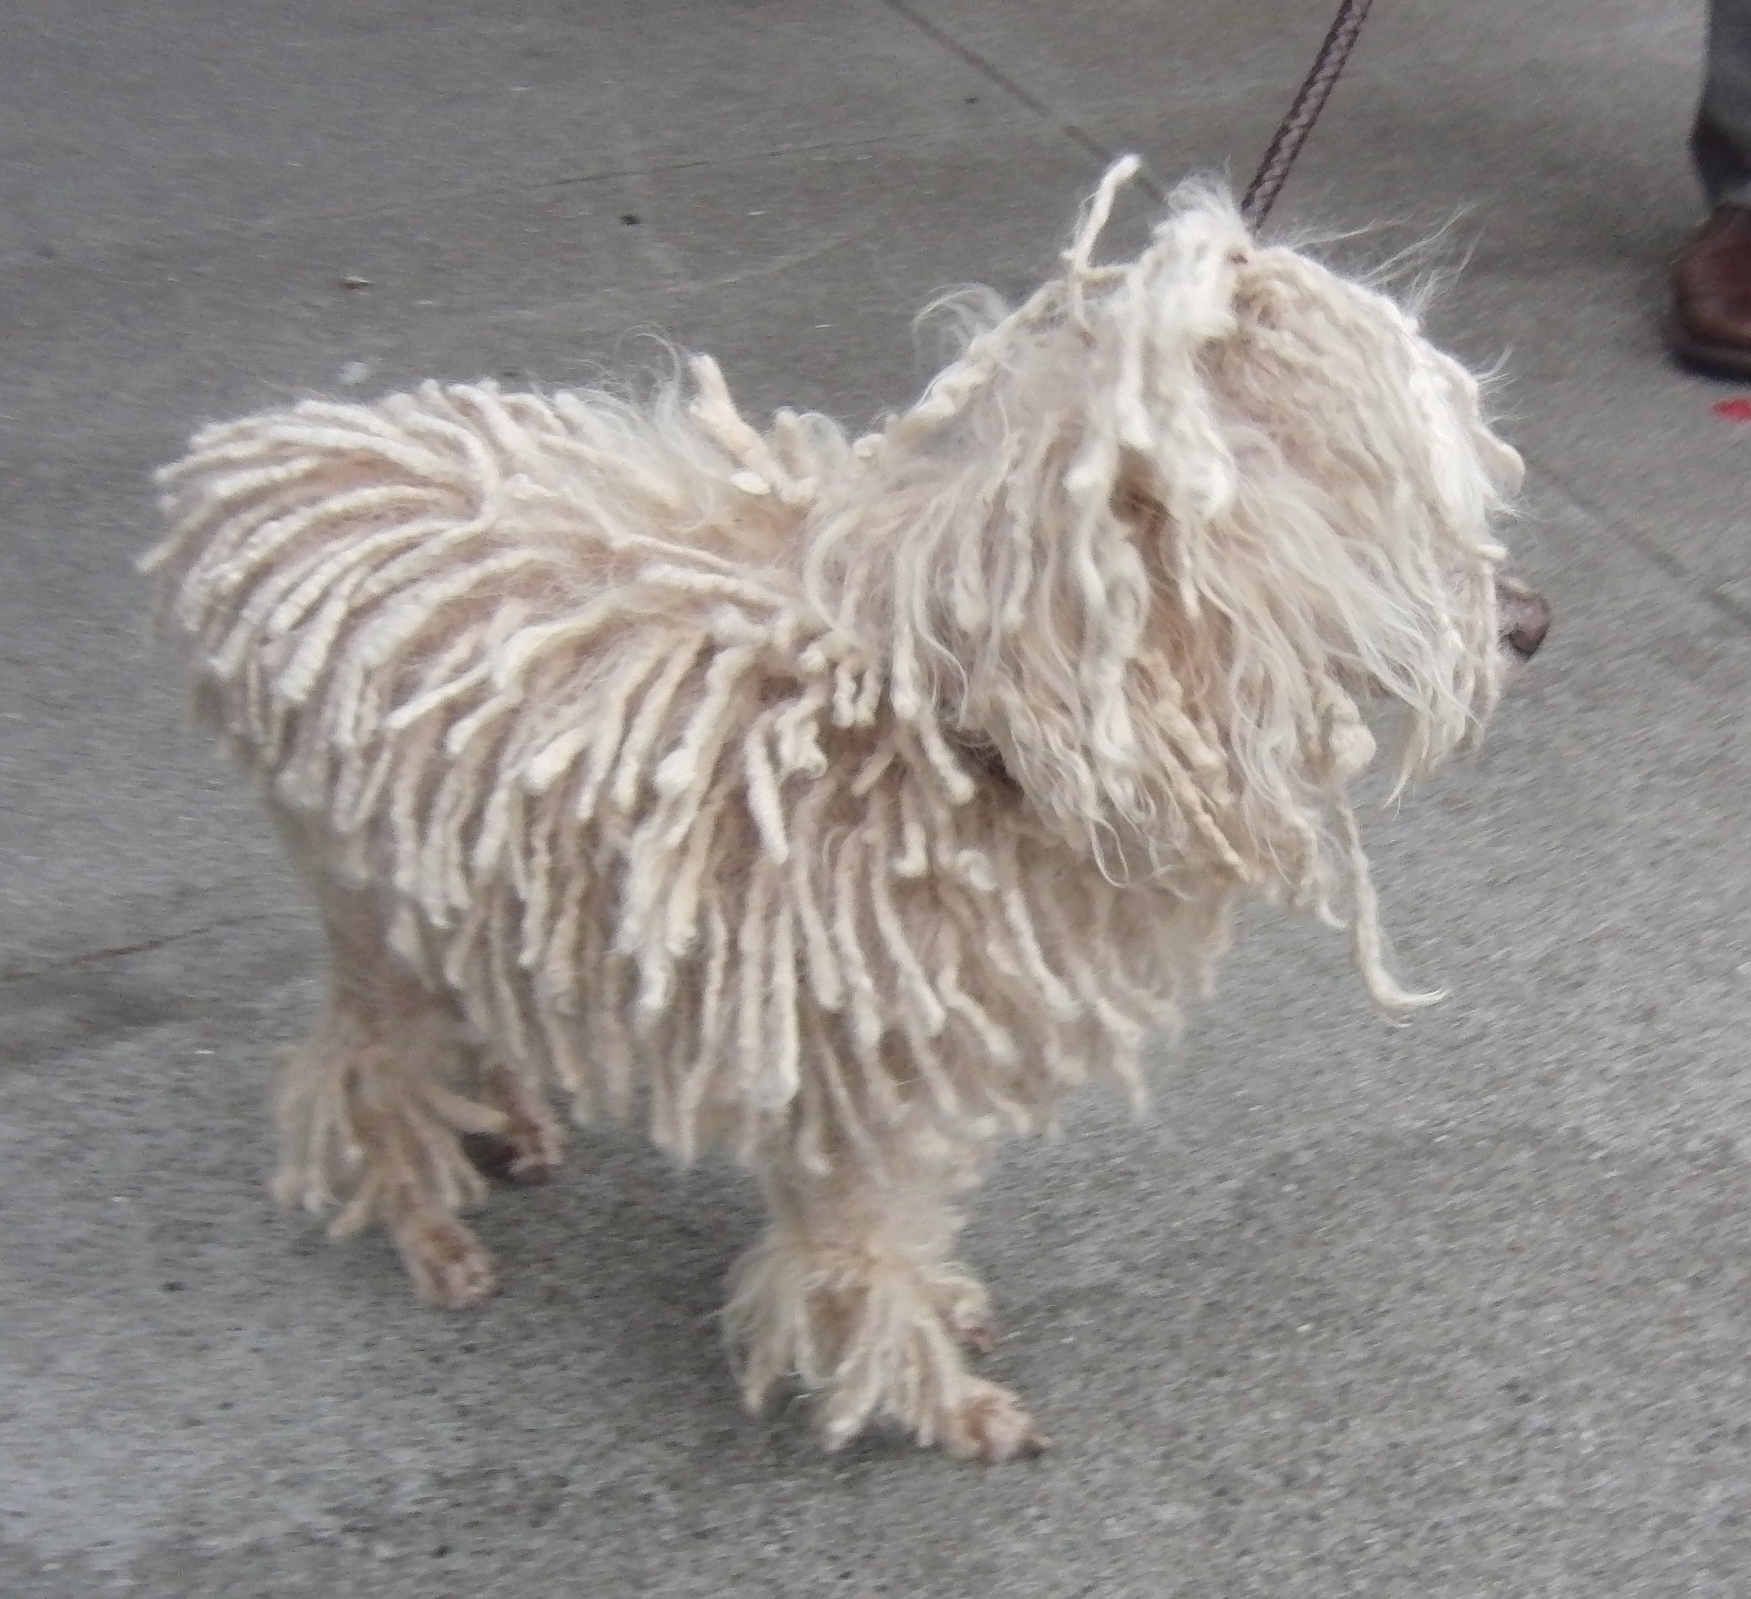 White Miniature Poodle With Dreadlocks